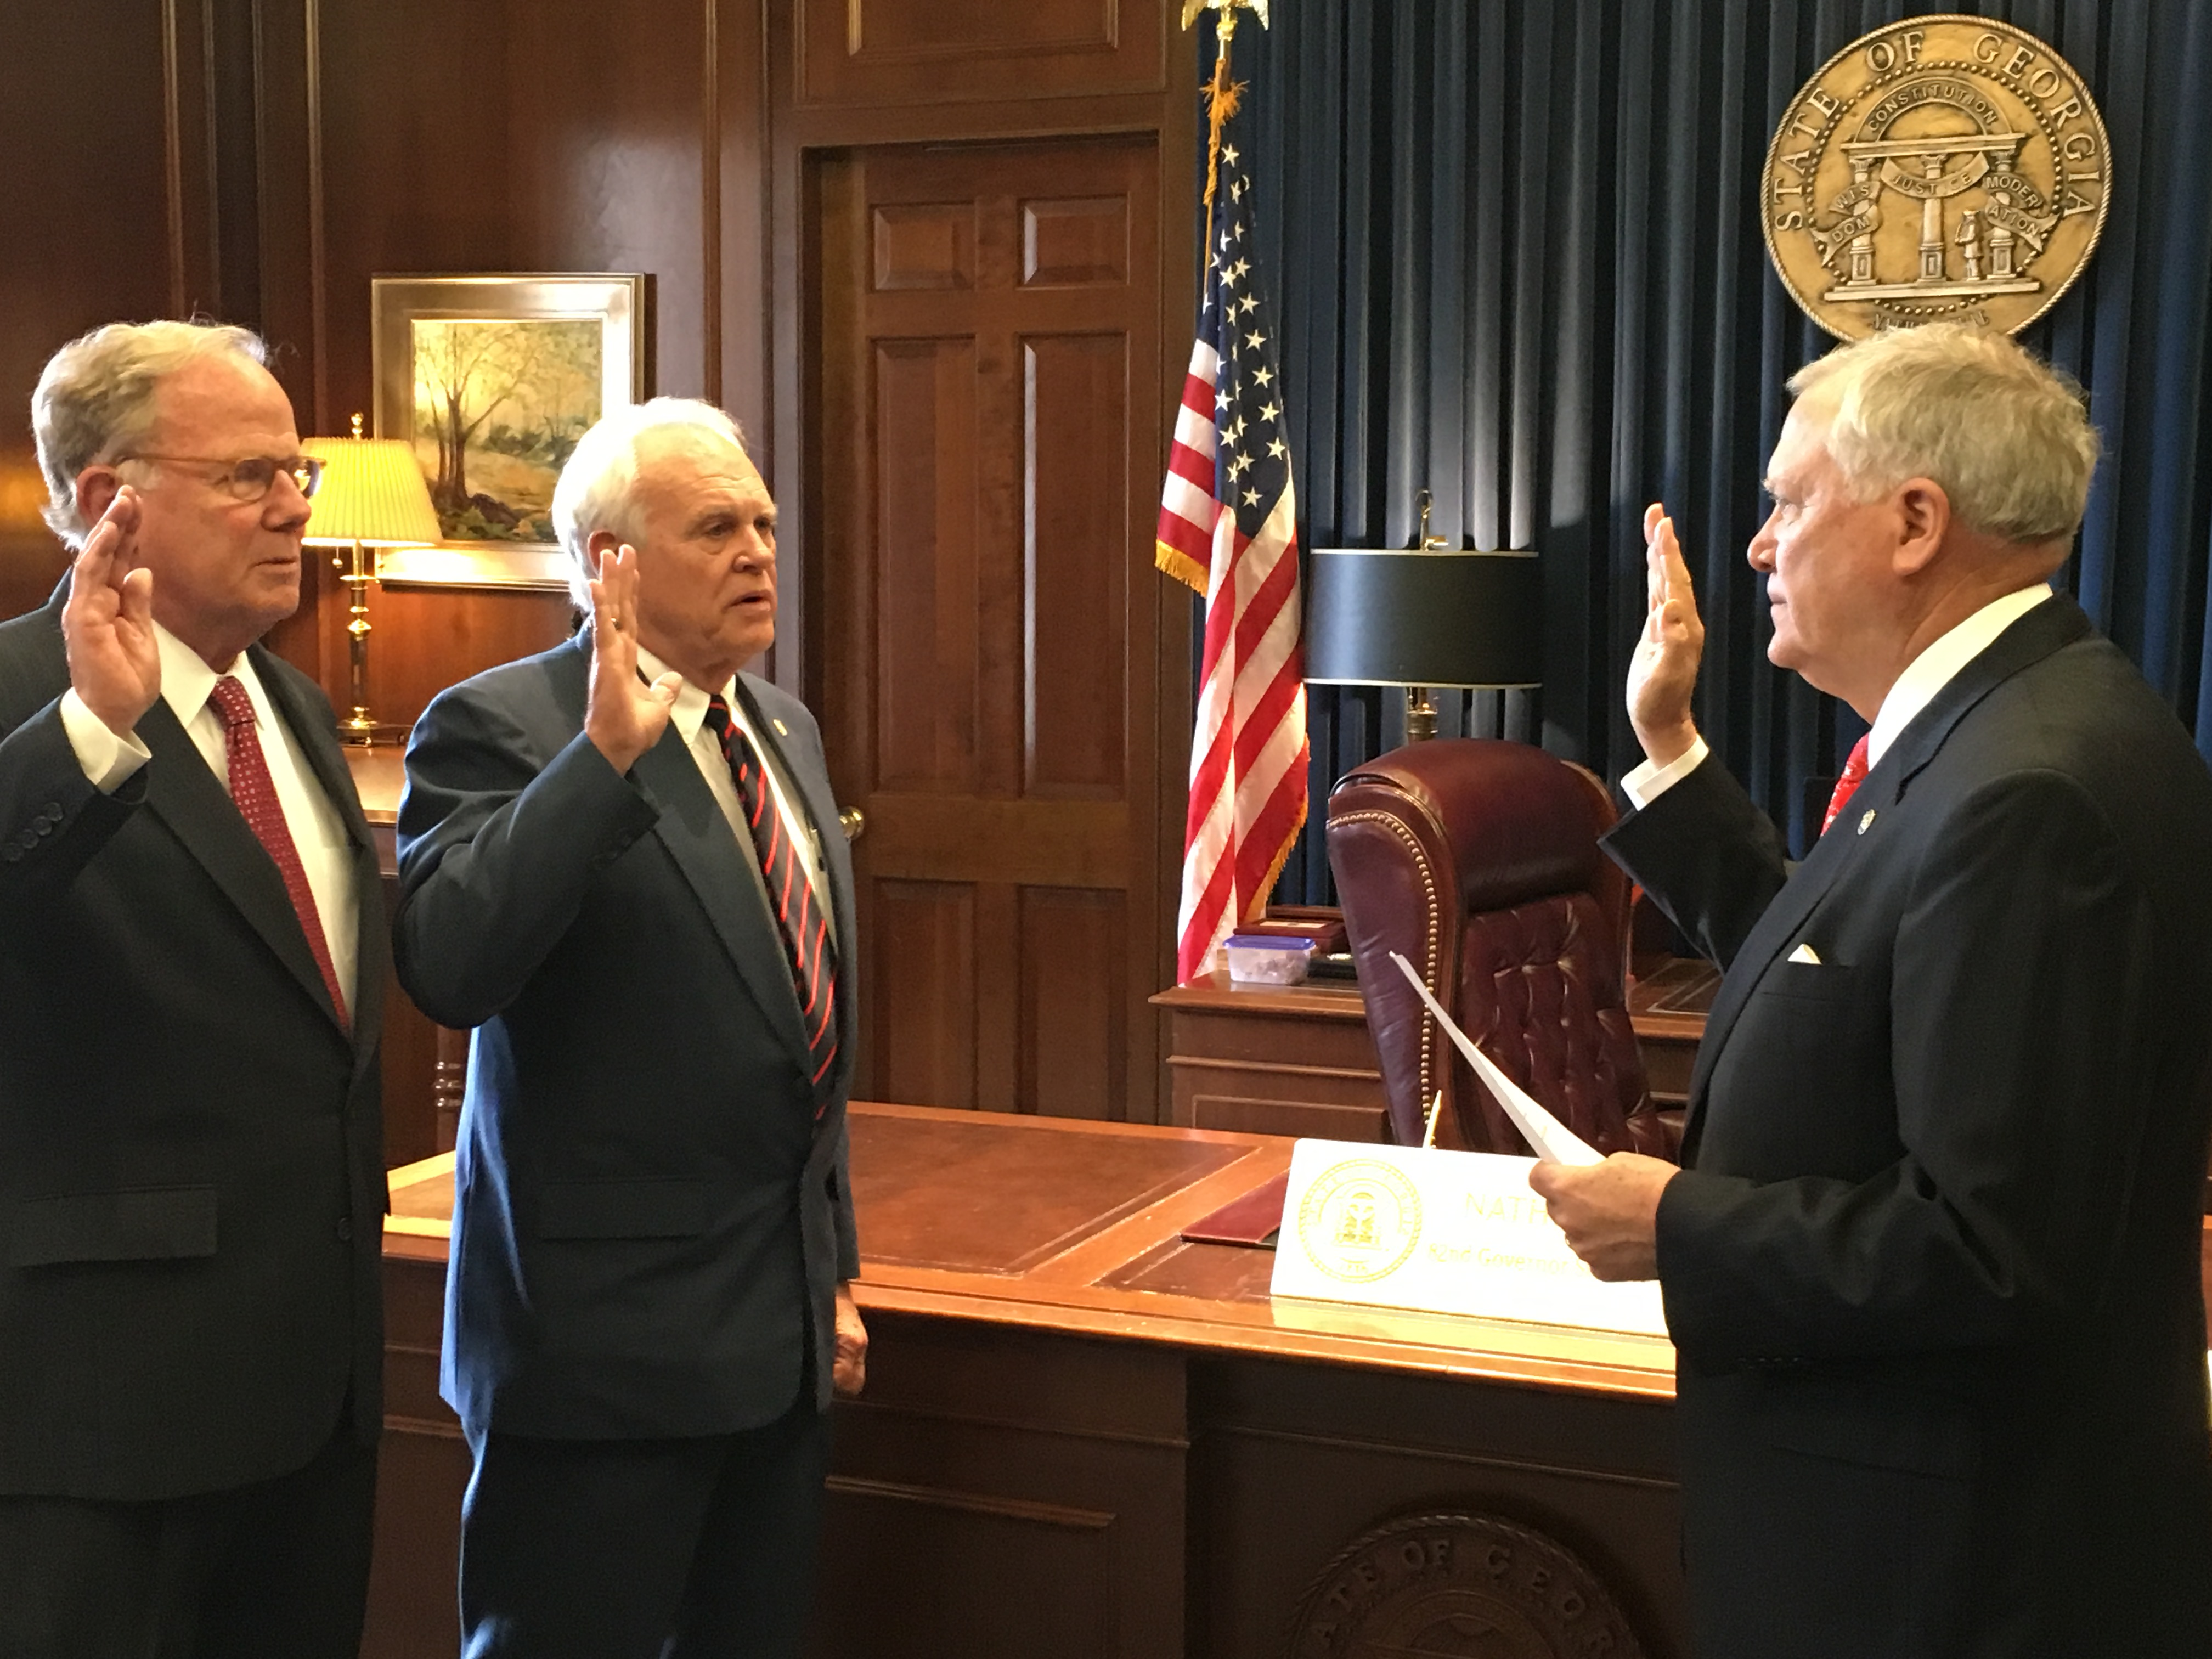 Governor Deal Swearing Appointees